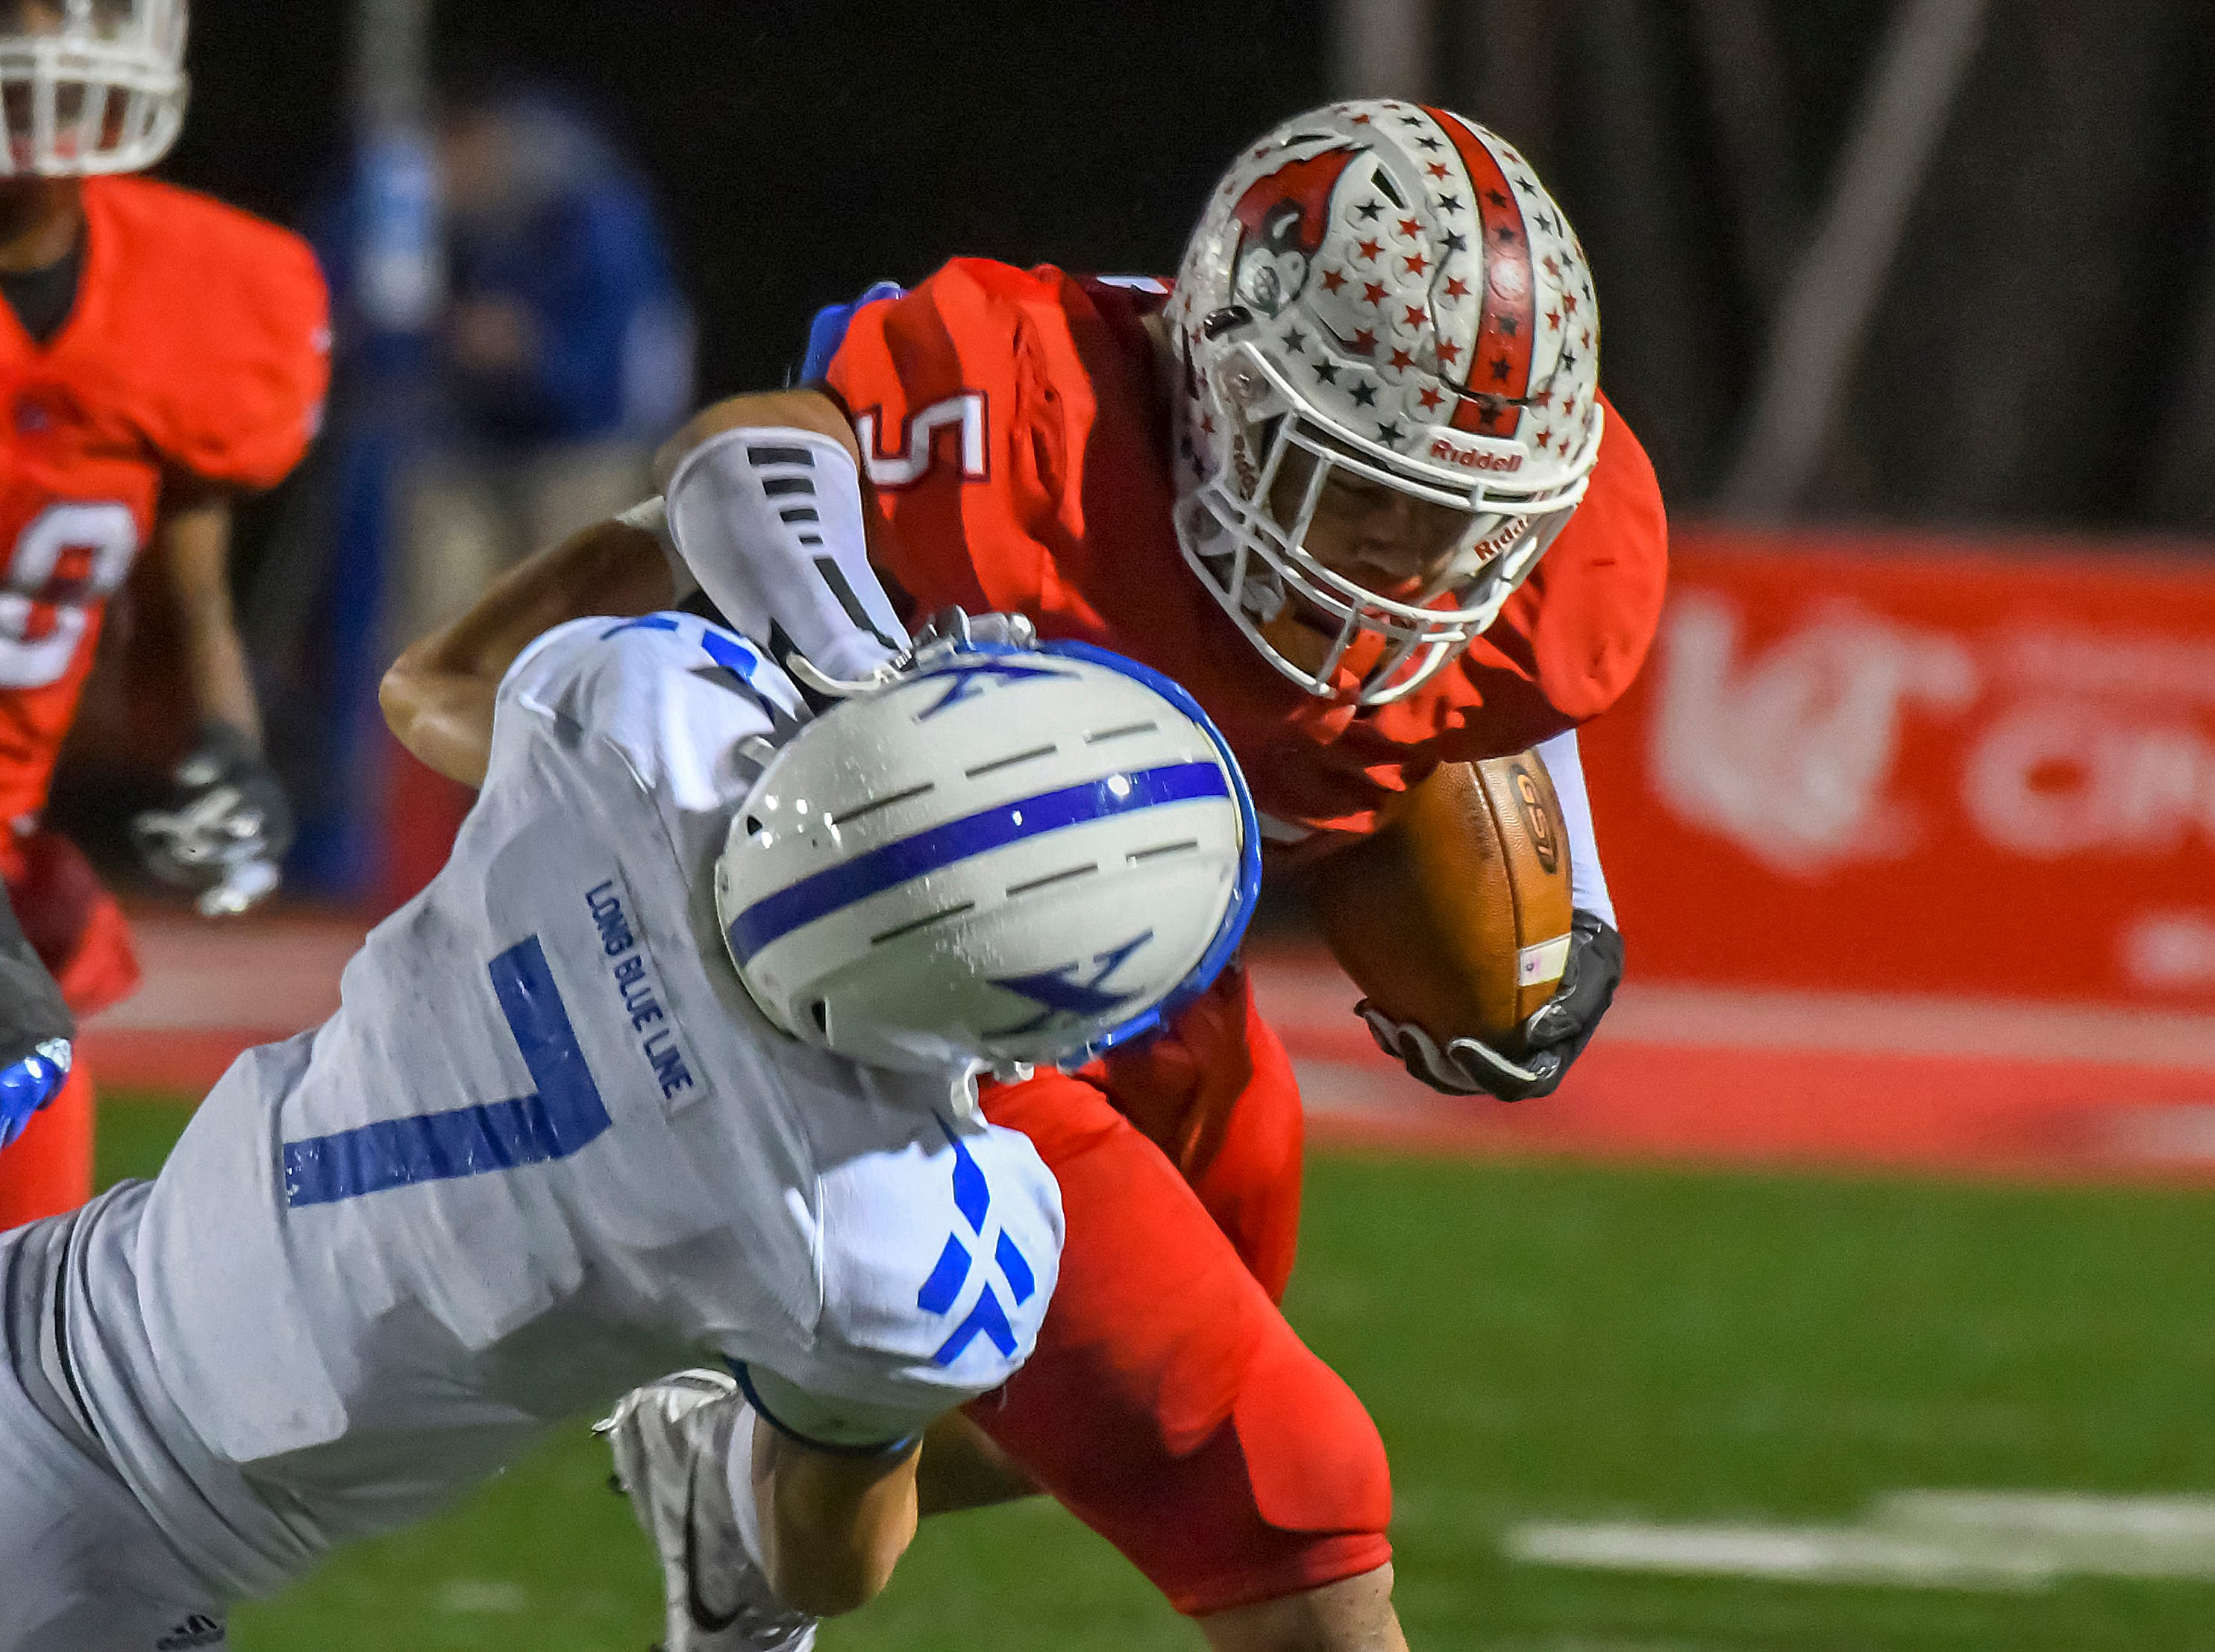 Ivan Pace Jr. of Colerain stiff arms St. Xavier defender Wiles Dolle (7) in the OHSAA DI Region IV playoffs at Colerain High School,  Friday Nov. 2, 2018